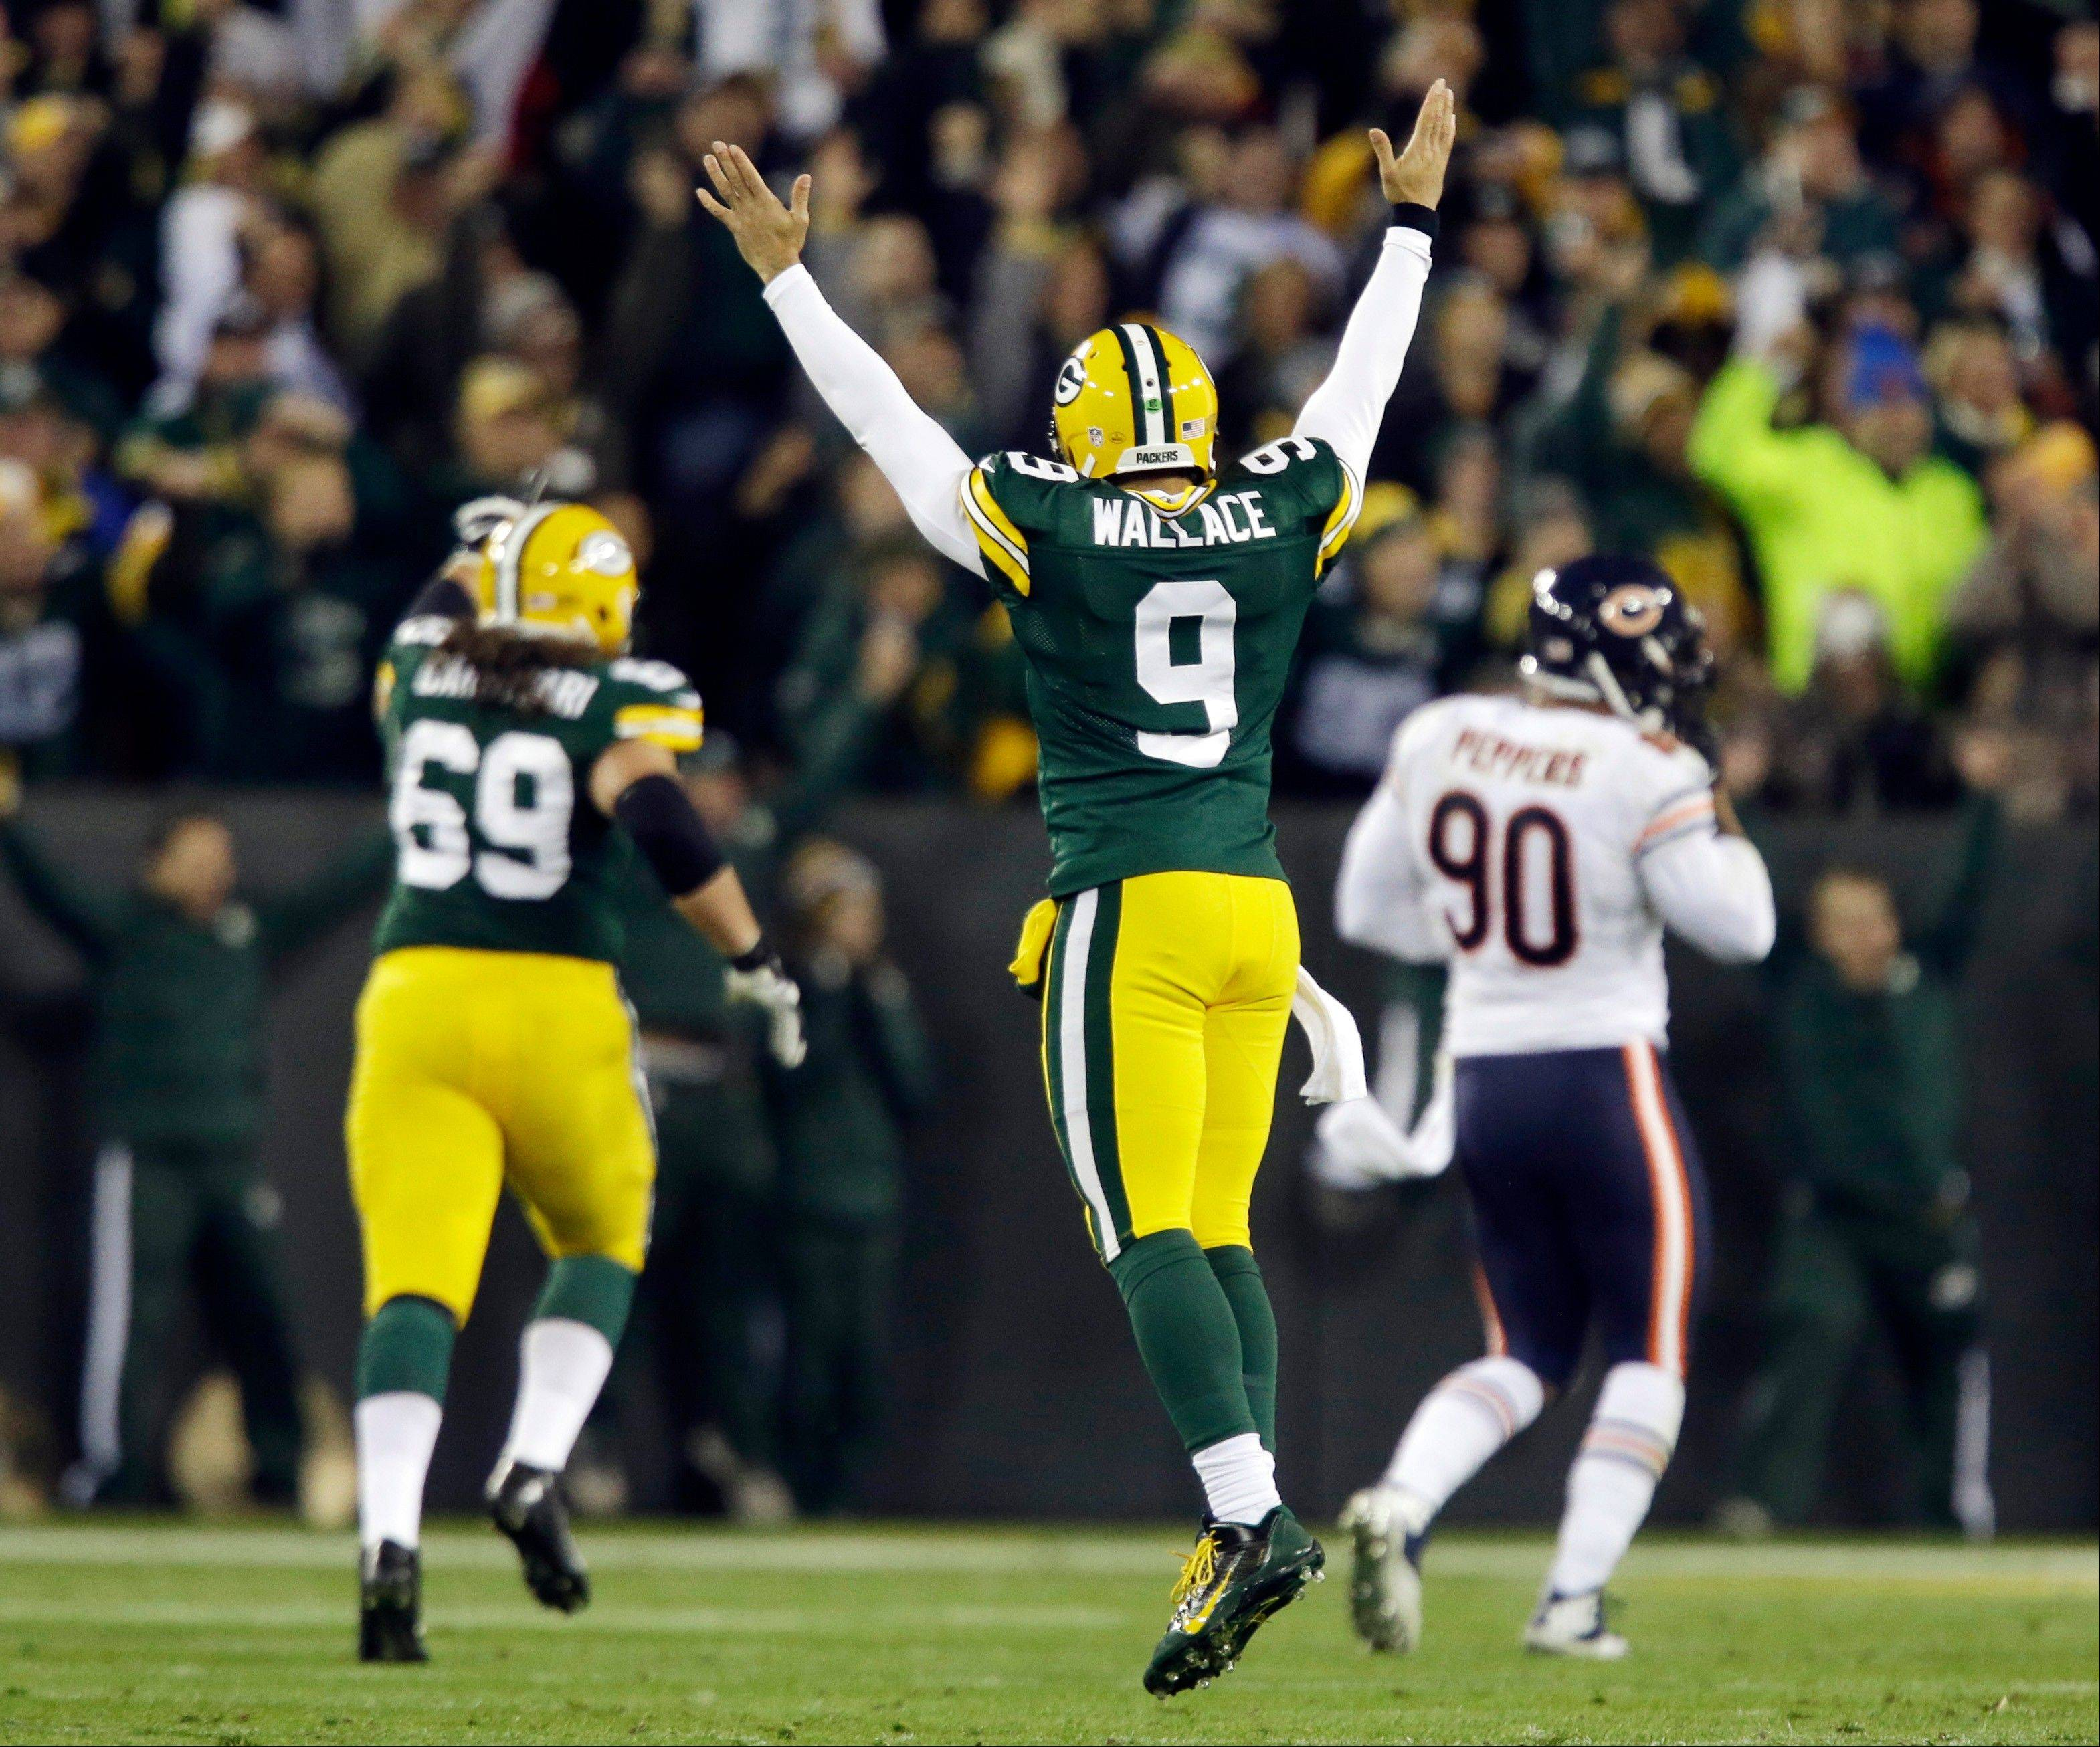 Green Bay Packers quarterback Seneca Wallace reacts after James Starks' 32-yard touchdown run during the first half.